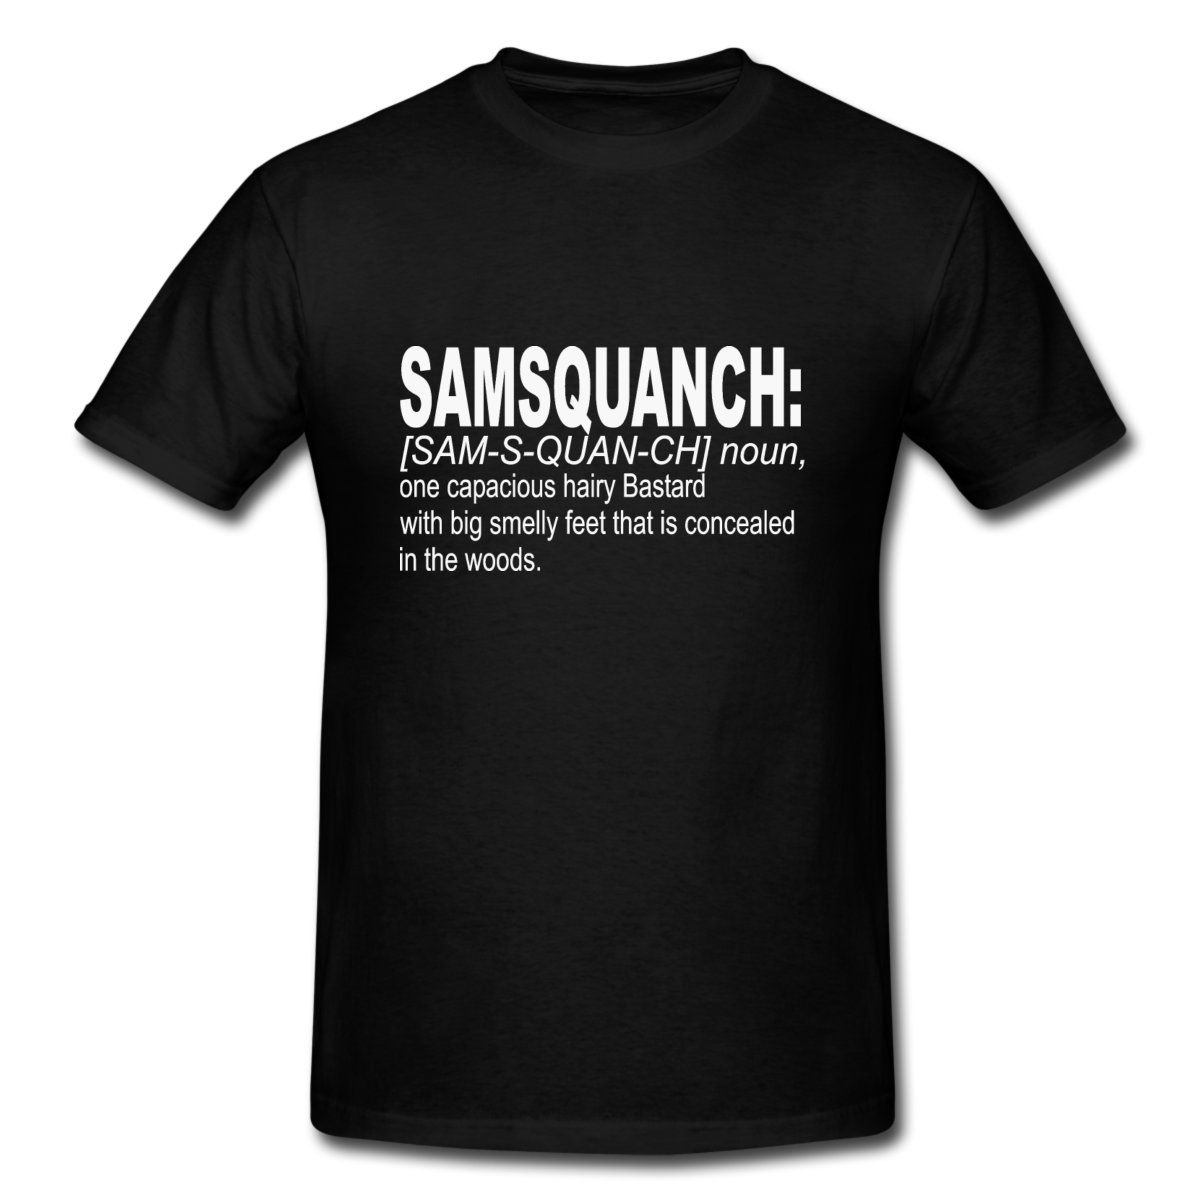 Samsquanch Men's Premium T-Shirt - black | Trailer park boys ...